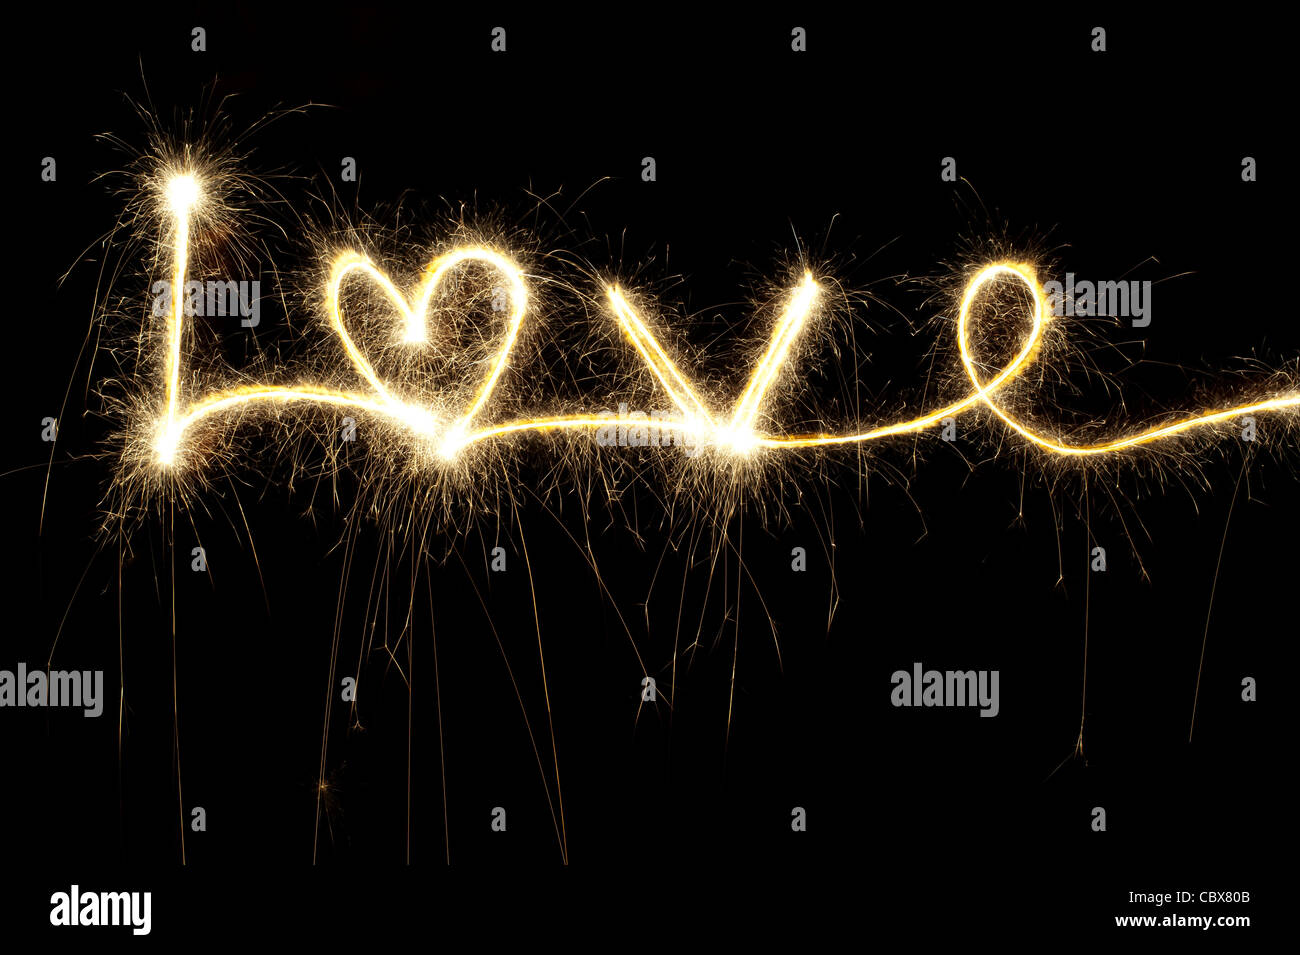 LOVE written with a sparkler at night including a heart shape - Stock Image